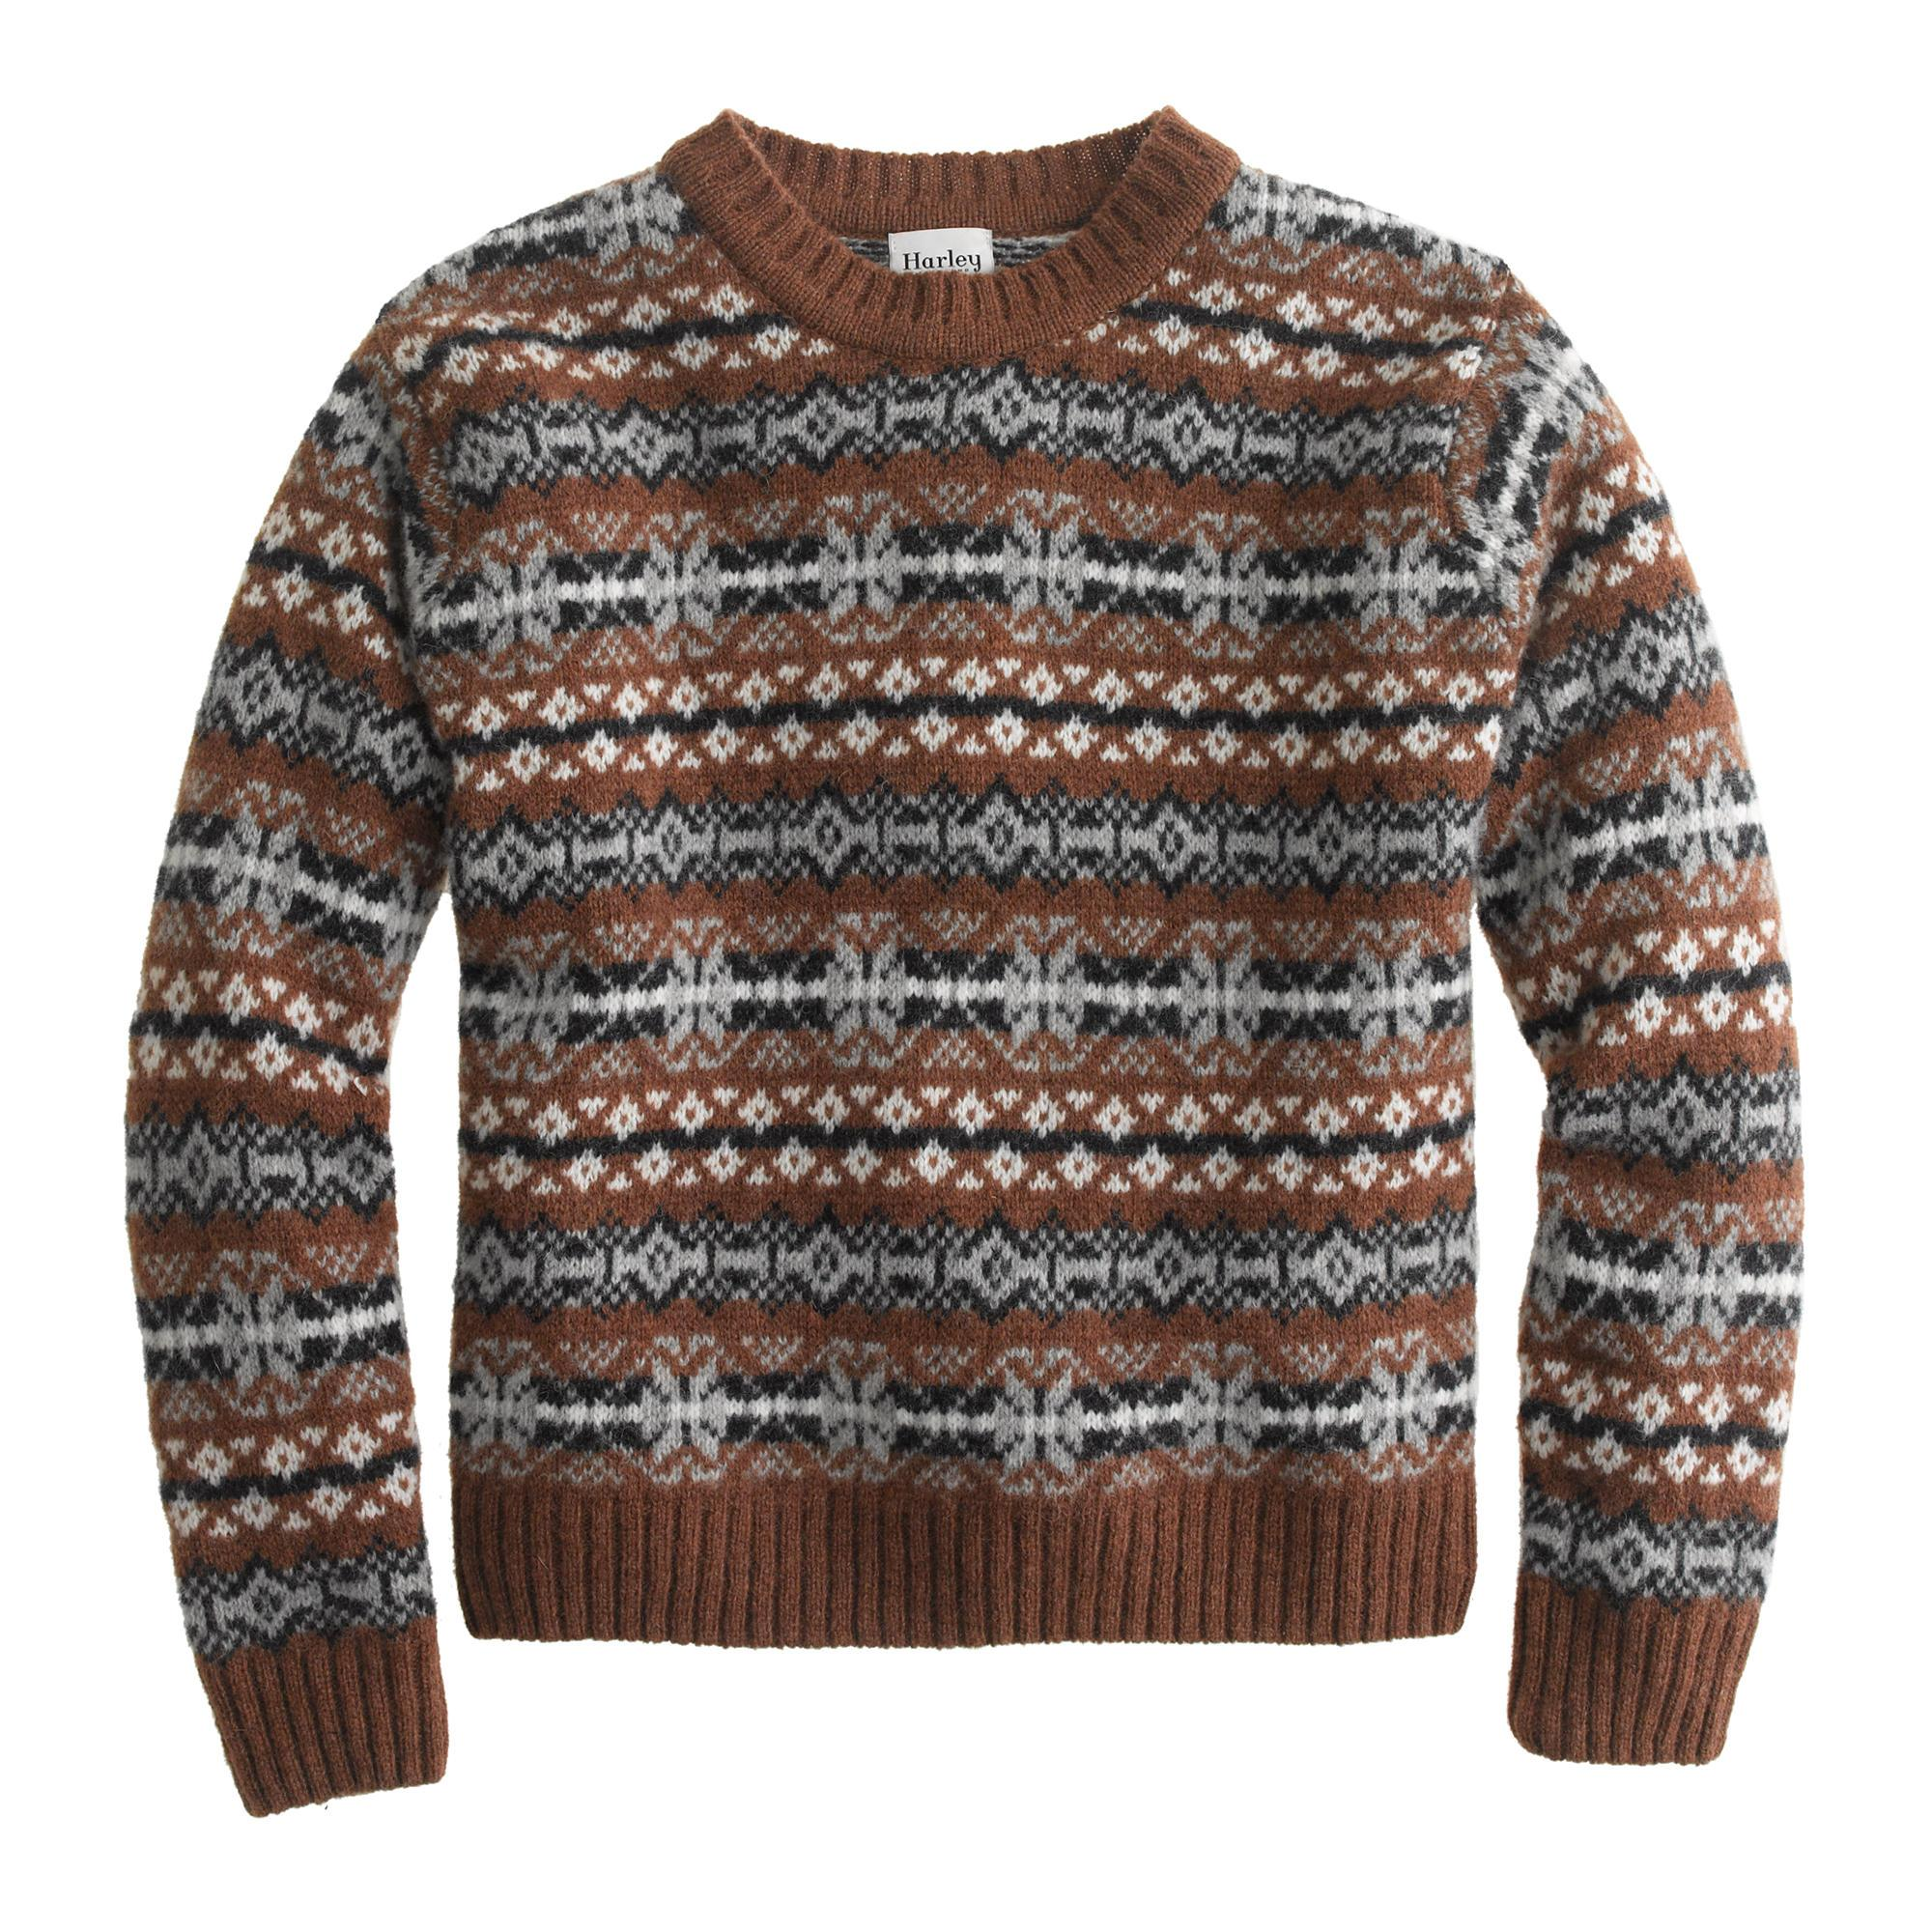 dbc1d6d38 J.Crew Harley Of Scotland Fair Isle Sweater in Gray for Men - Lyst